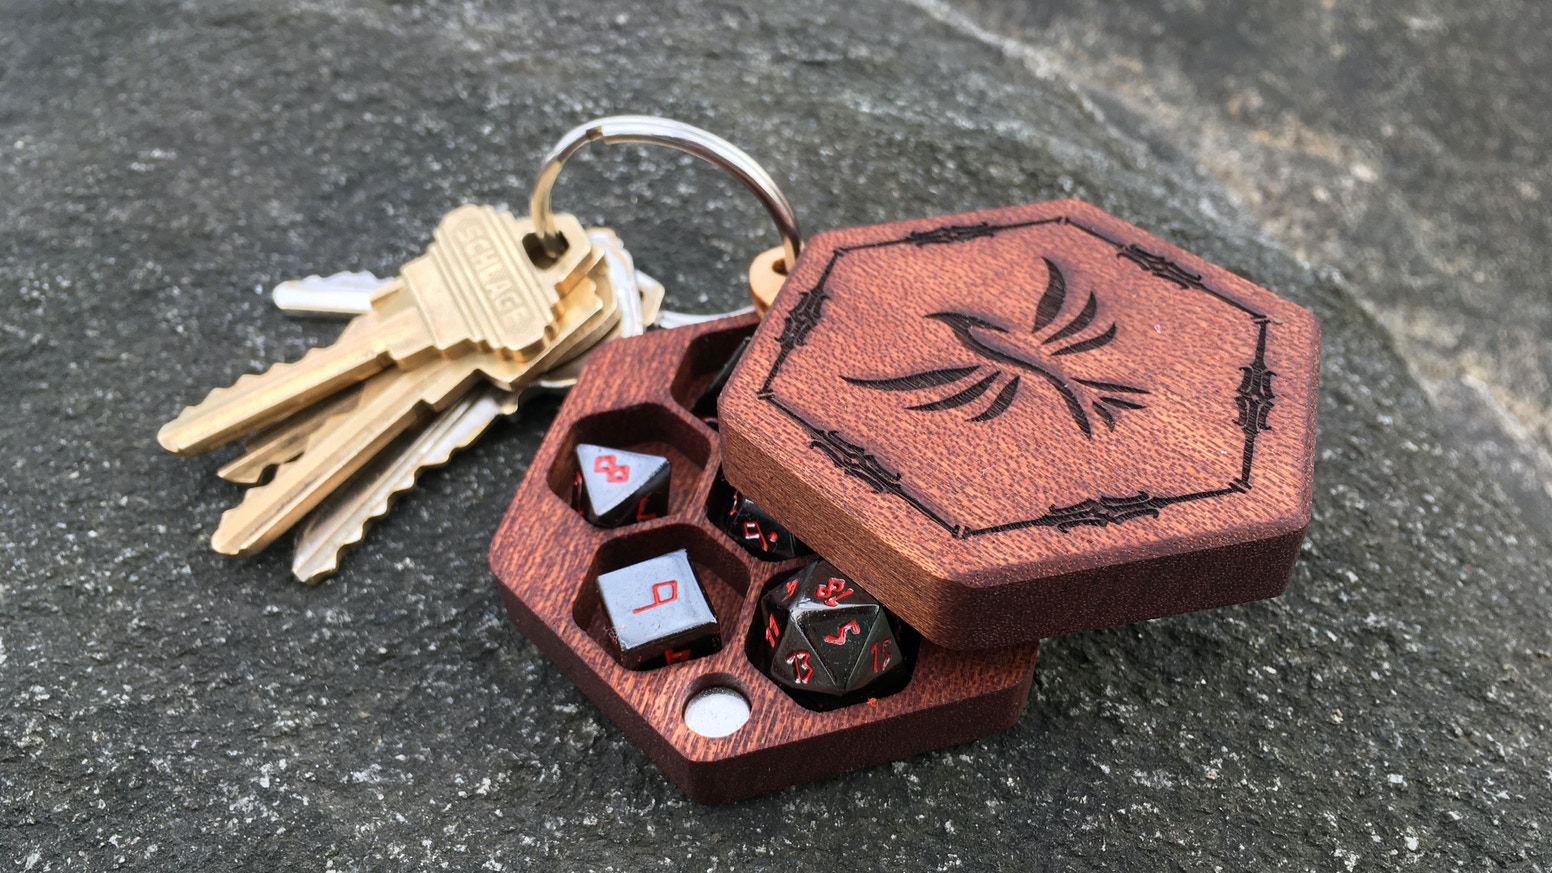 Go small and go home: tiny dice with tiny dice boxes